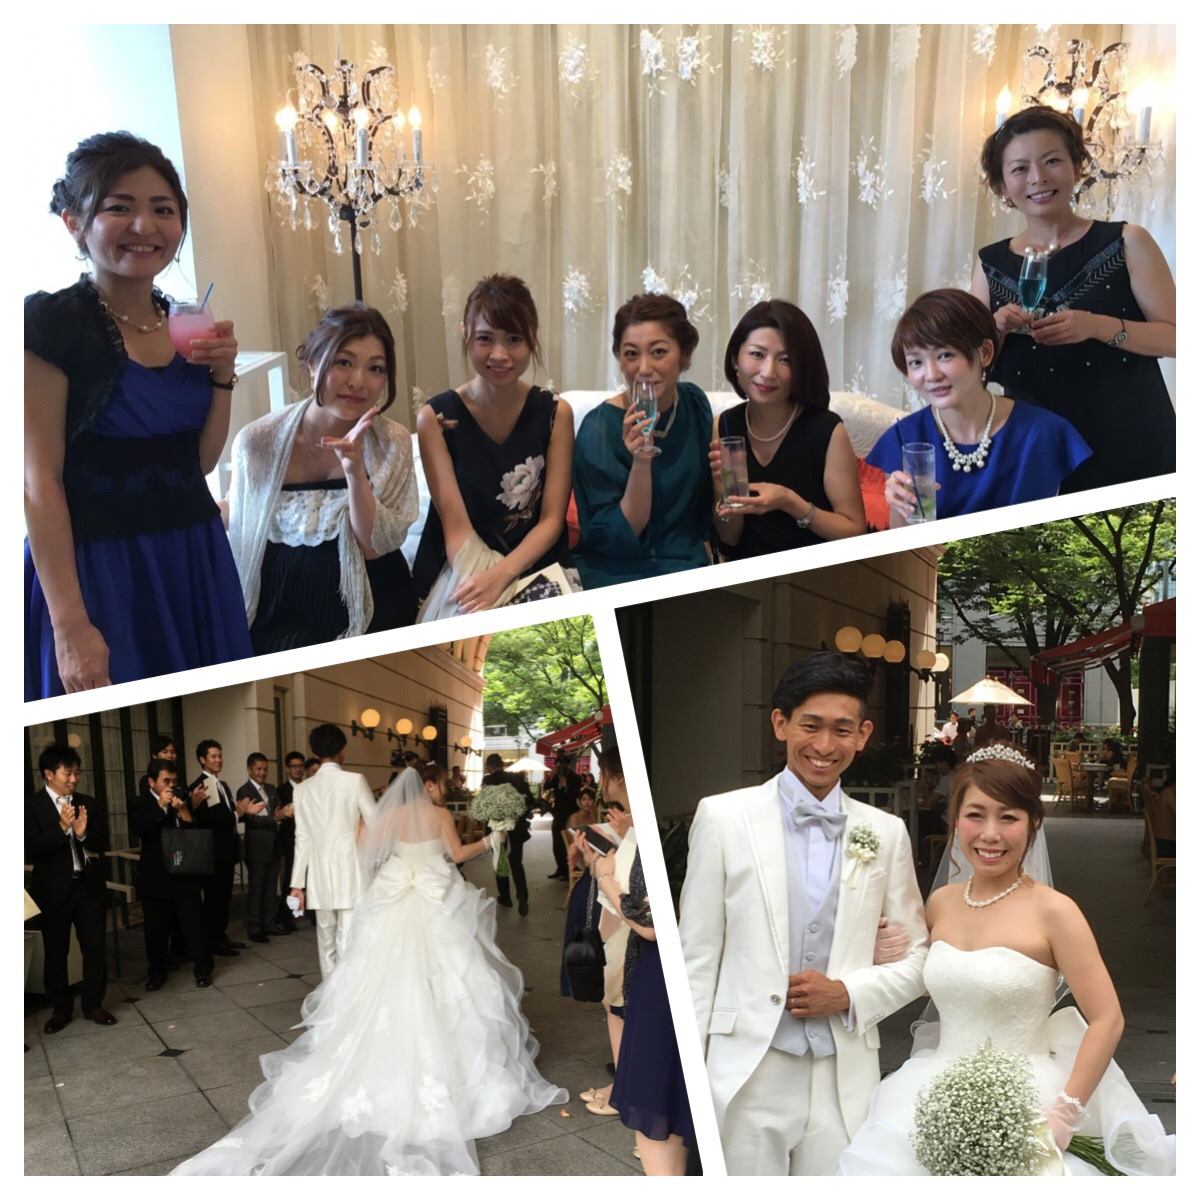 Happy Wedding*・゜゚・*:.。..。.:*・'(*゚▽゚*)'・*:.。. .。.:*・゜゚・*/YURA